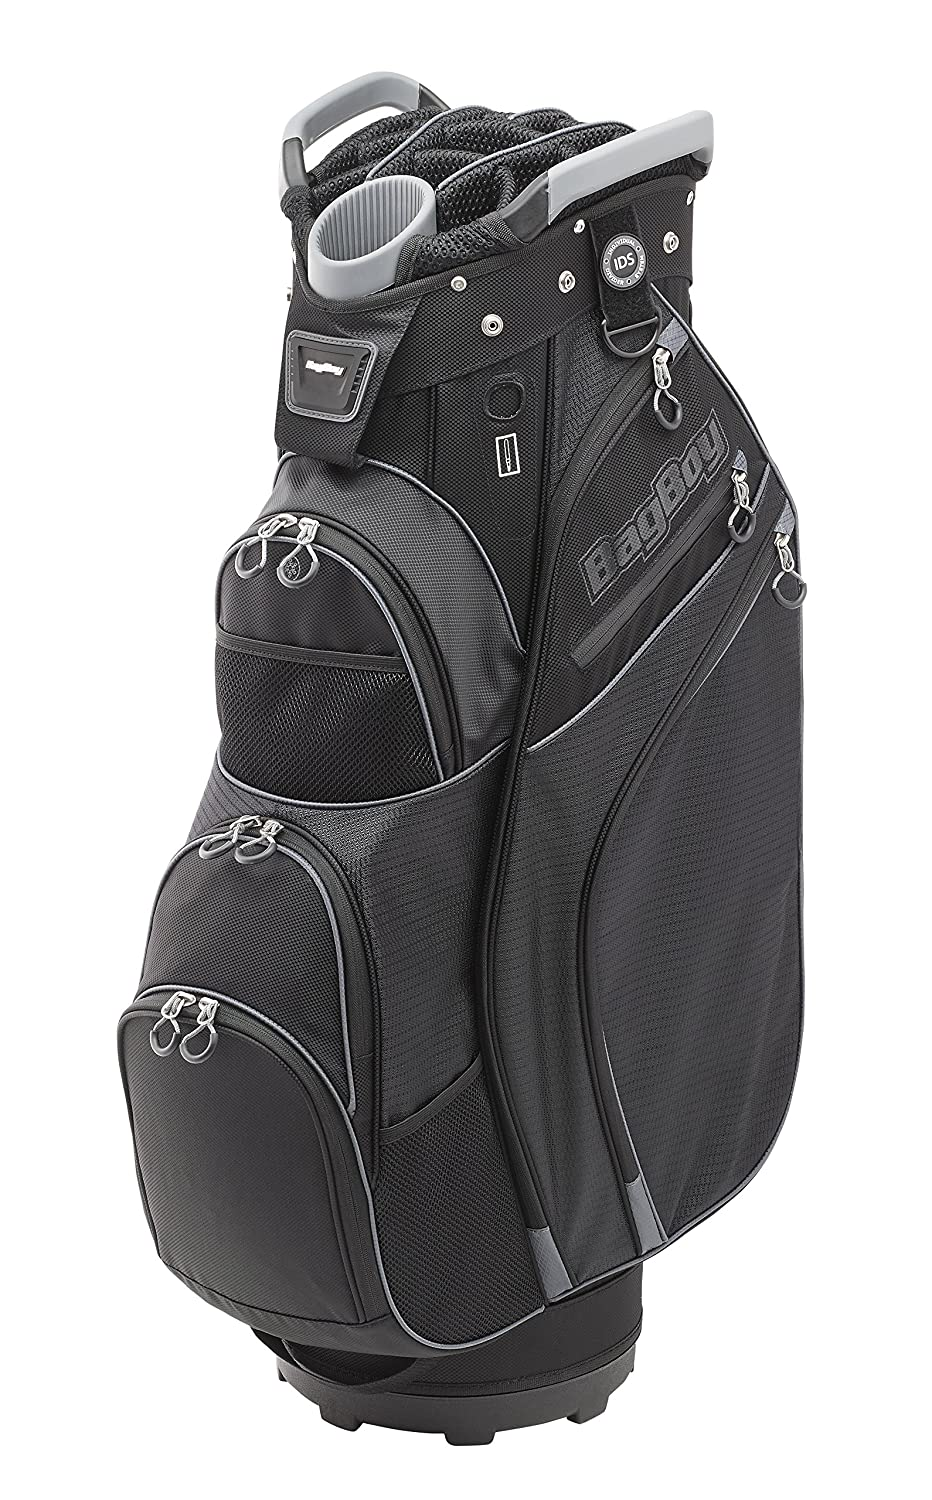 Bag Boy Chiller Golf Cart Bag